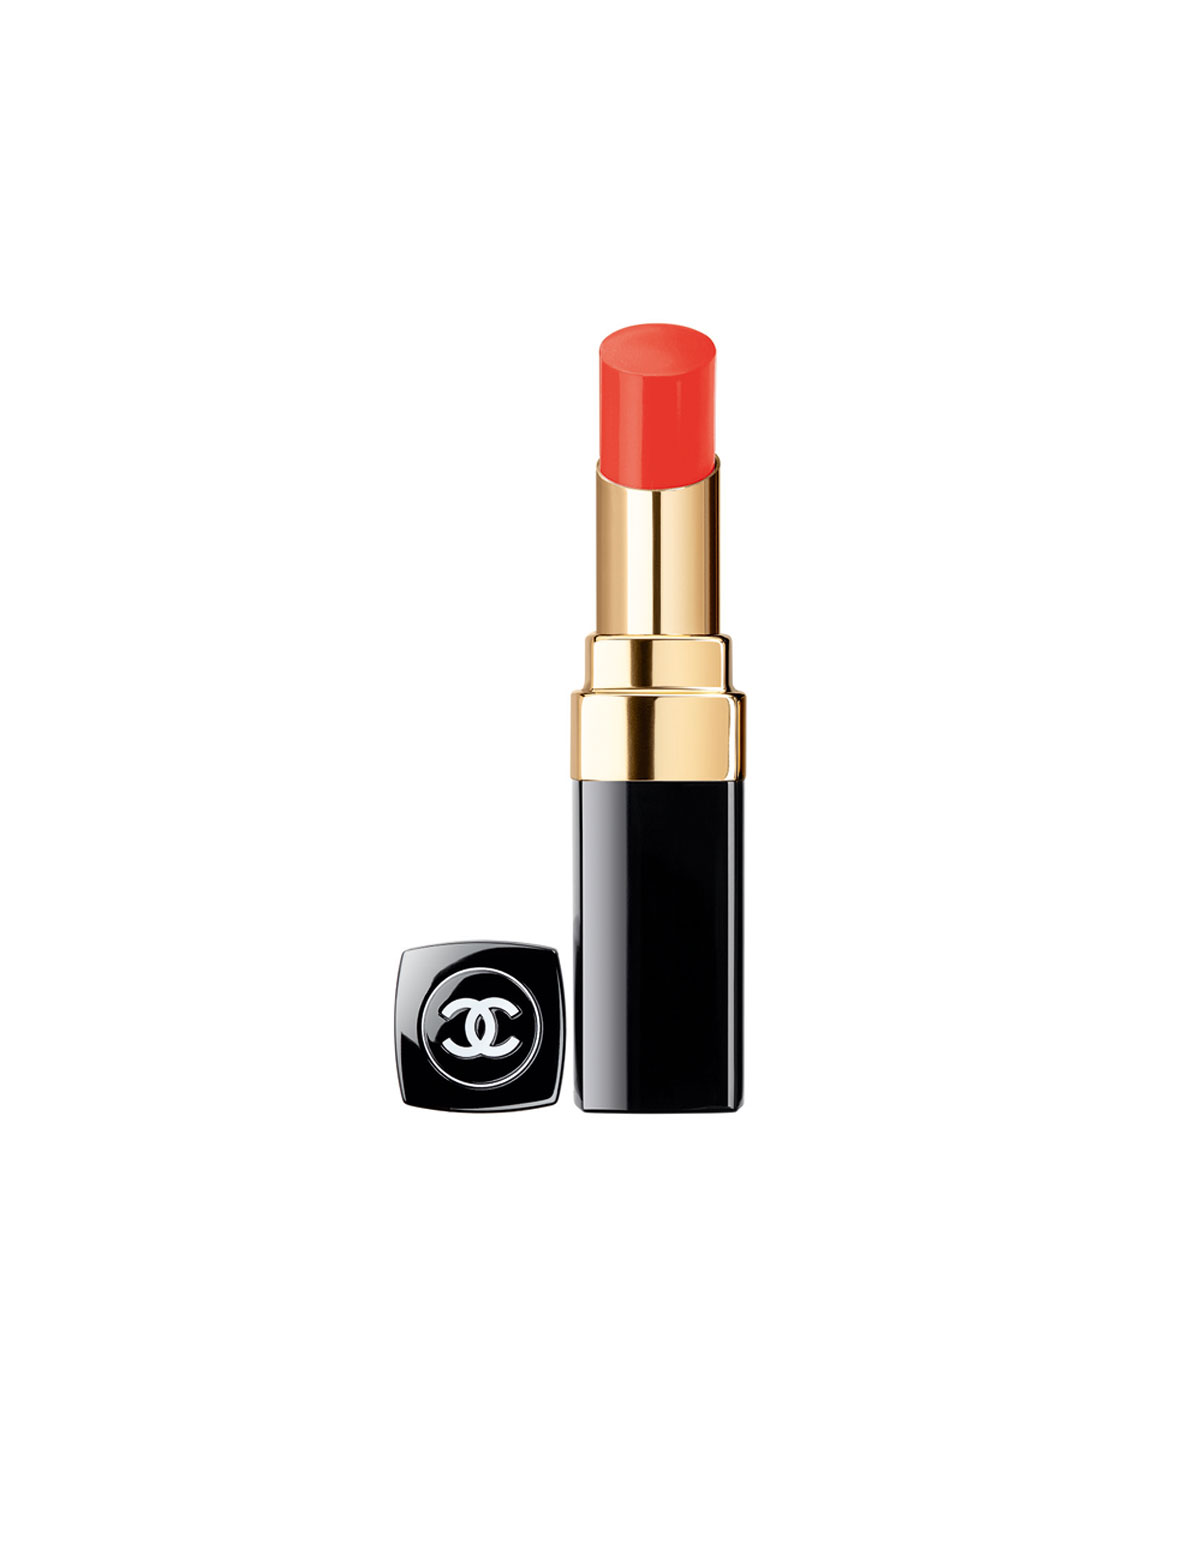 L.A. Sunrise de Chanel (P16). Rouge Coco Shine nº 114 (PVPR 32,50 €)